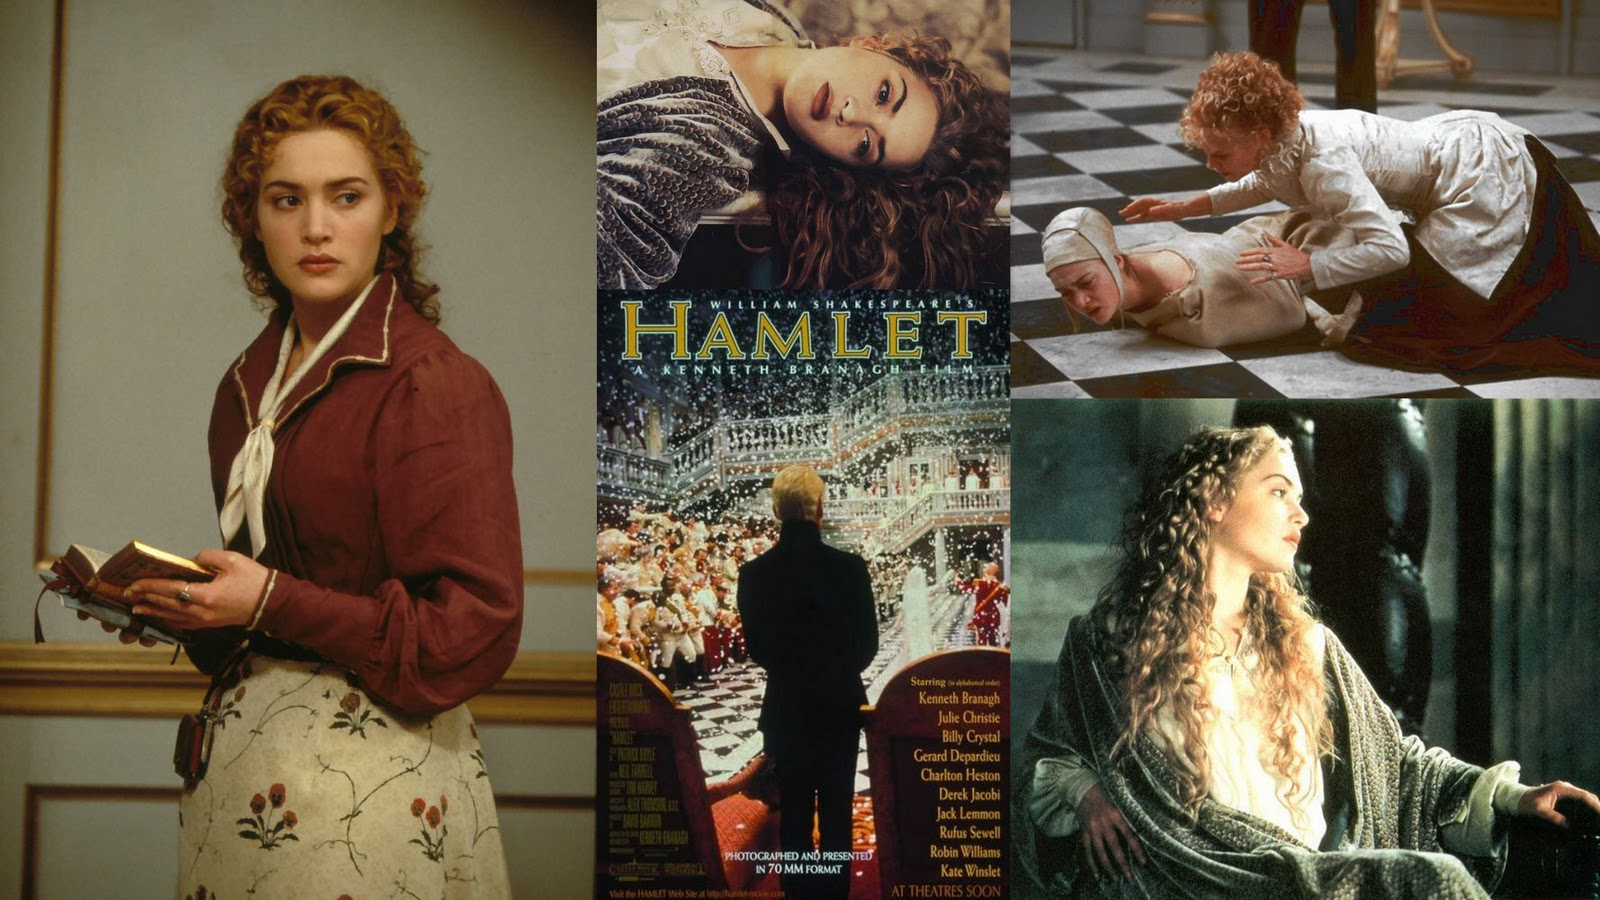 hamlet essays on ophelia Prince hamlet is a university student who enjoys contemplating difficult philosophical questions when his father, king of denmark, dies, he returns home to find evidence of foul play in his father's death.